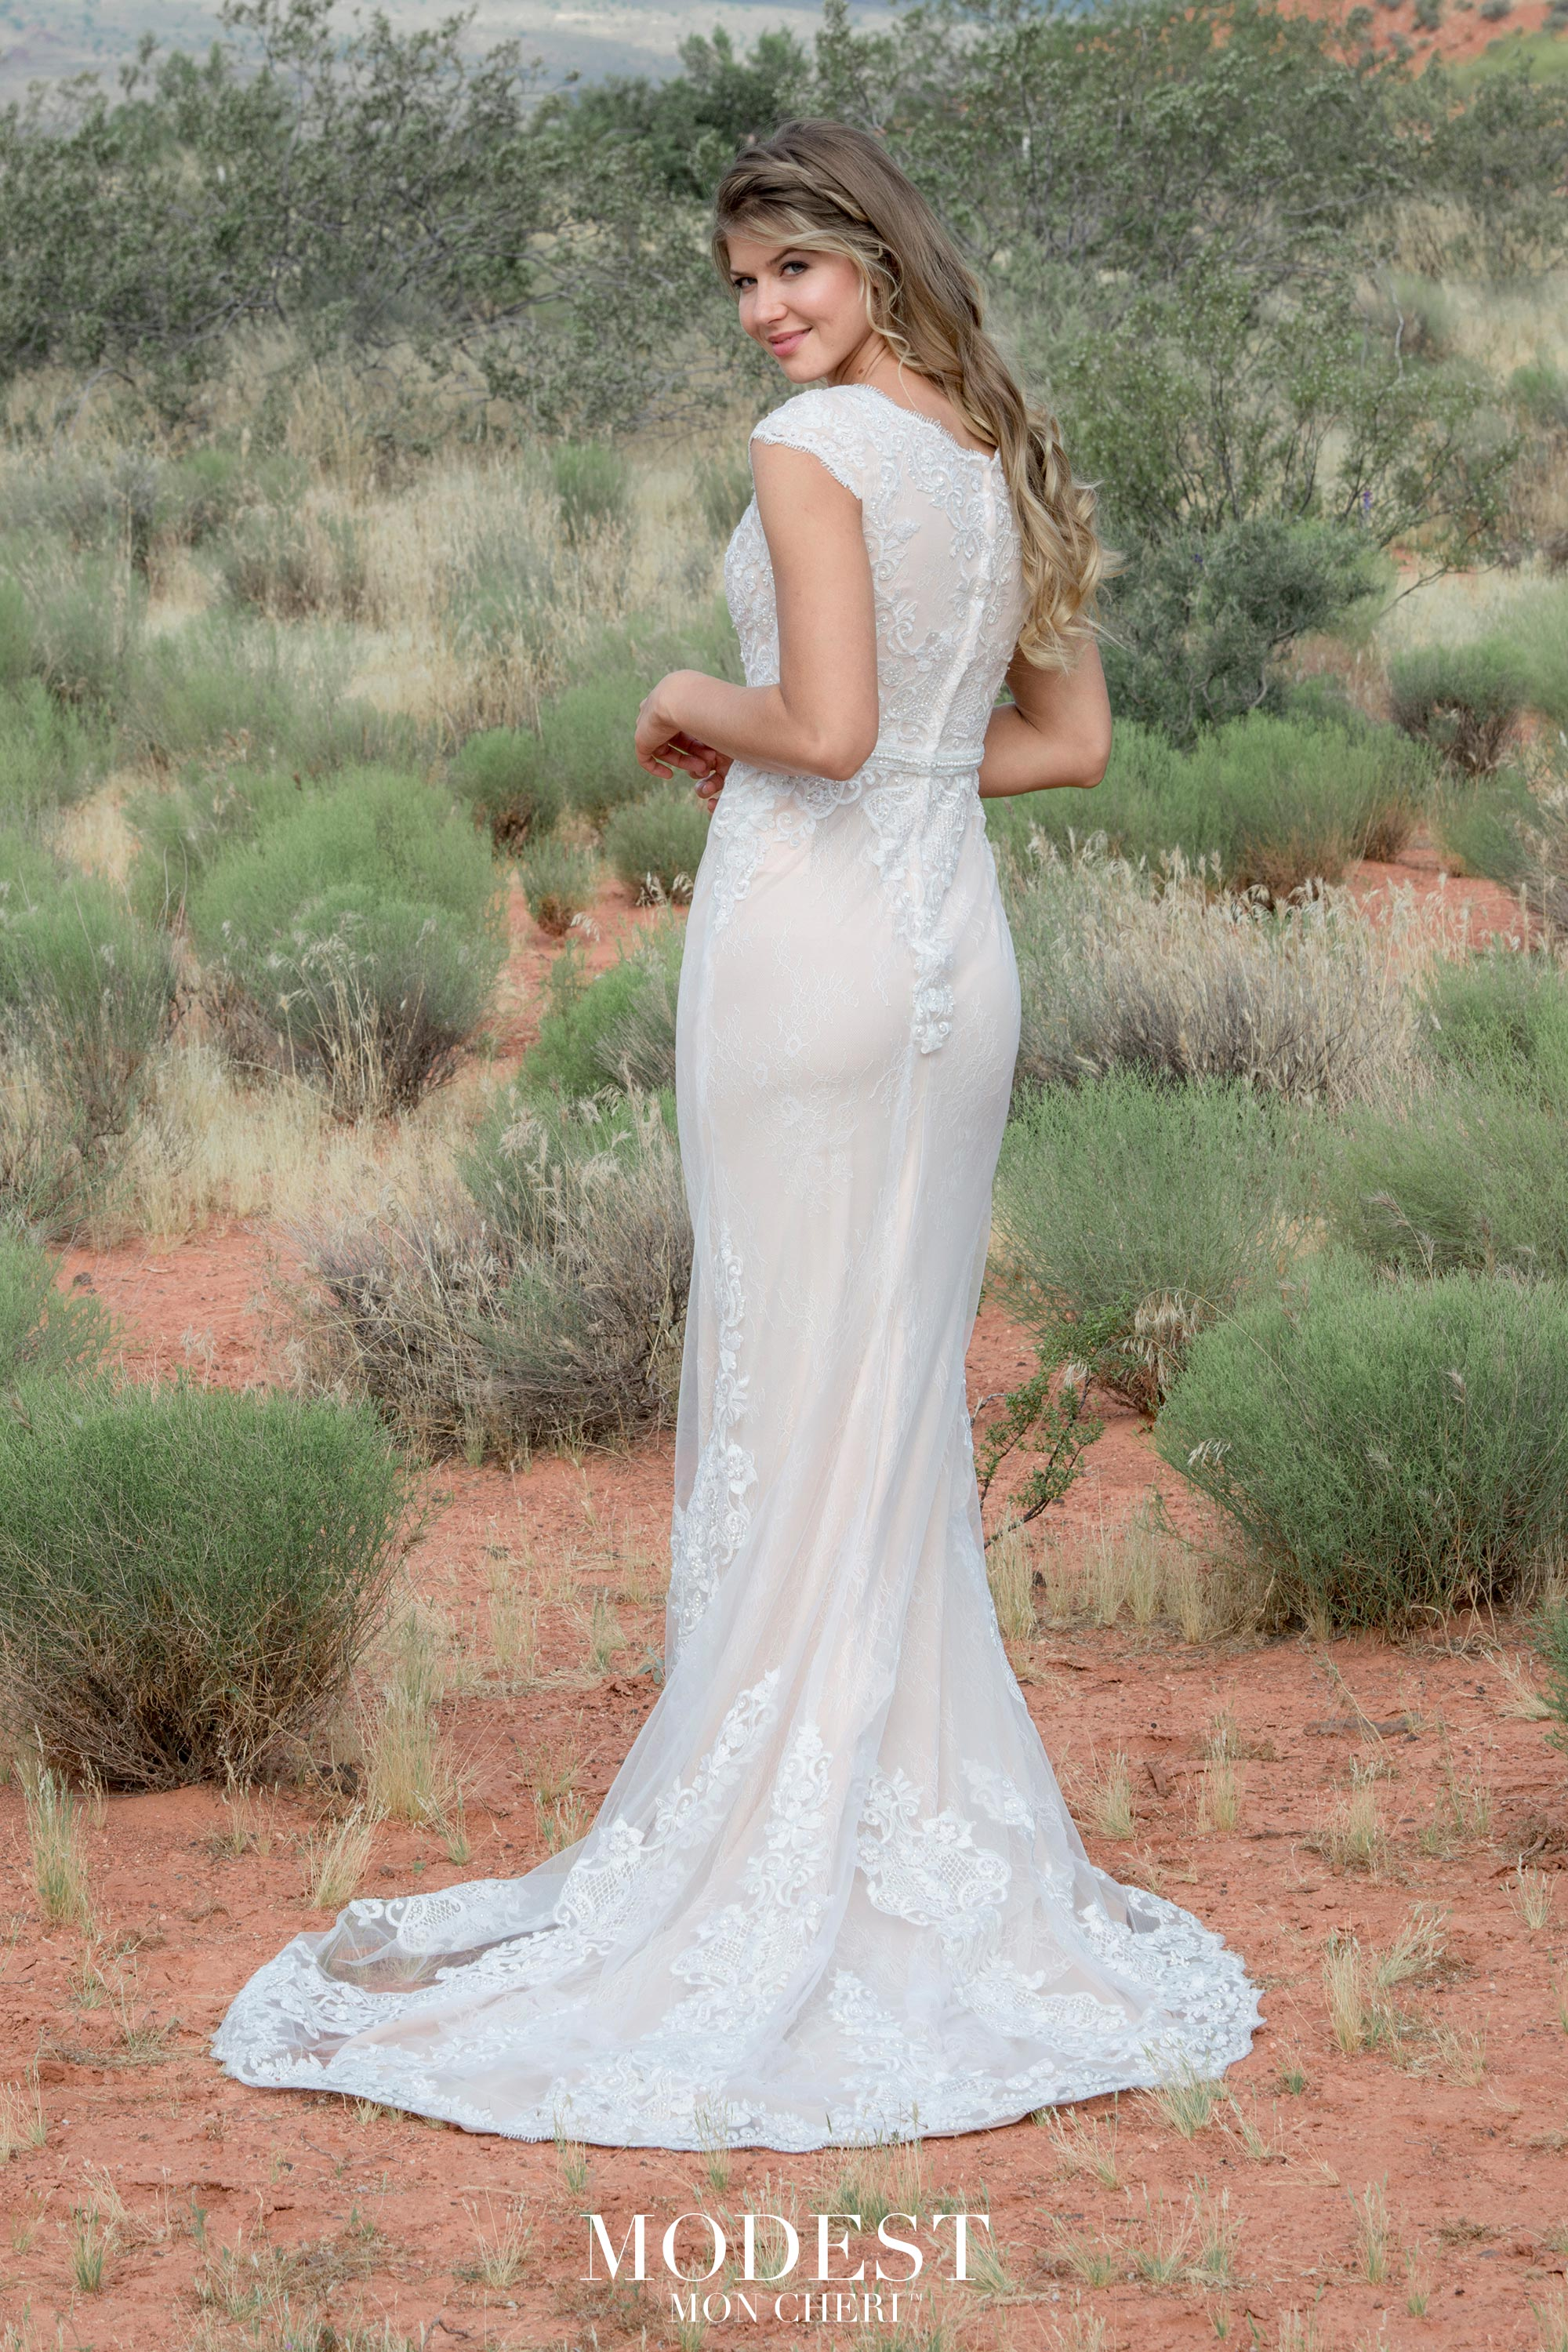 TR12028 lace Modest wedding dress with sleeves plus size brides A-Line modest bridal gown back view